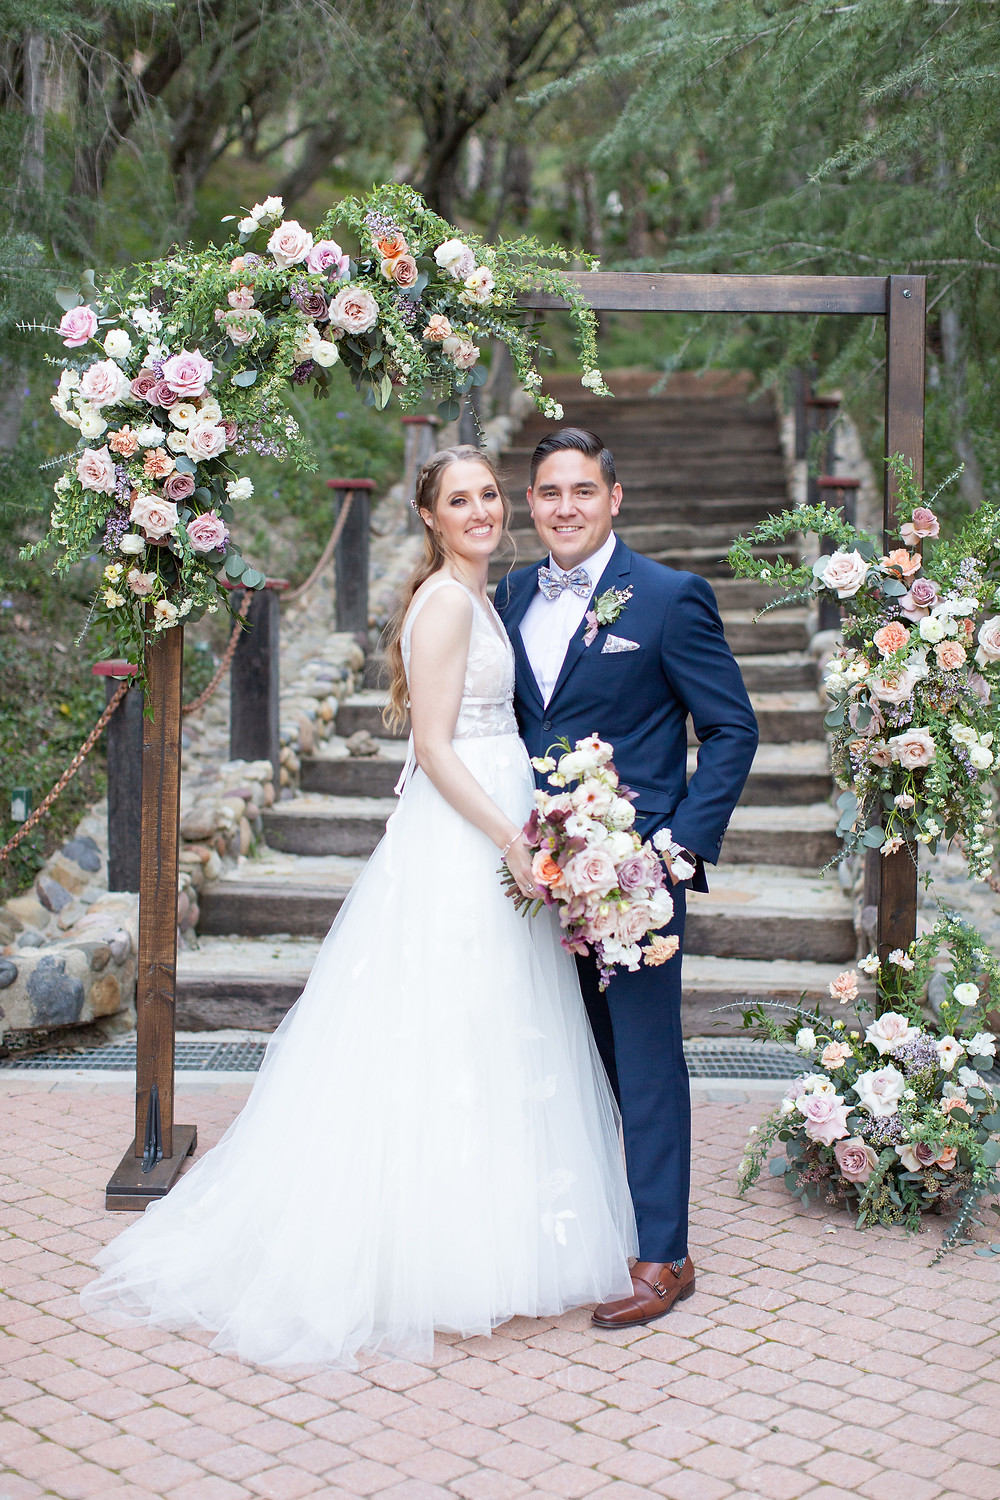 Bride and Groom under Beautiful lush floral heavy purple ceremony arch;  filled with lilac, spirea, carnations, ranunculus, sweet peas, roses and butterfly ranunculus made by San Diego wedding florist Le Champange Projects for a stunning Spring wedding at Rancho Las Lomas in Orange County, CA with a purple color palette.